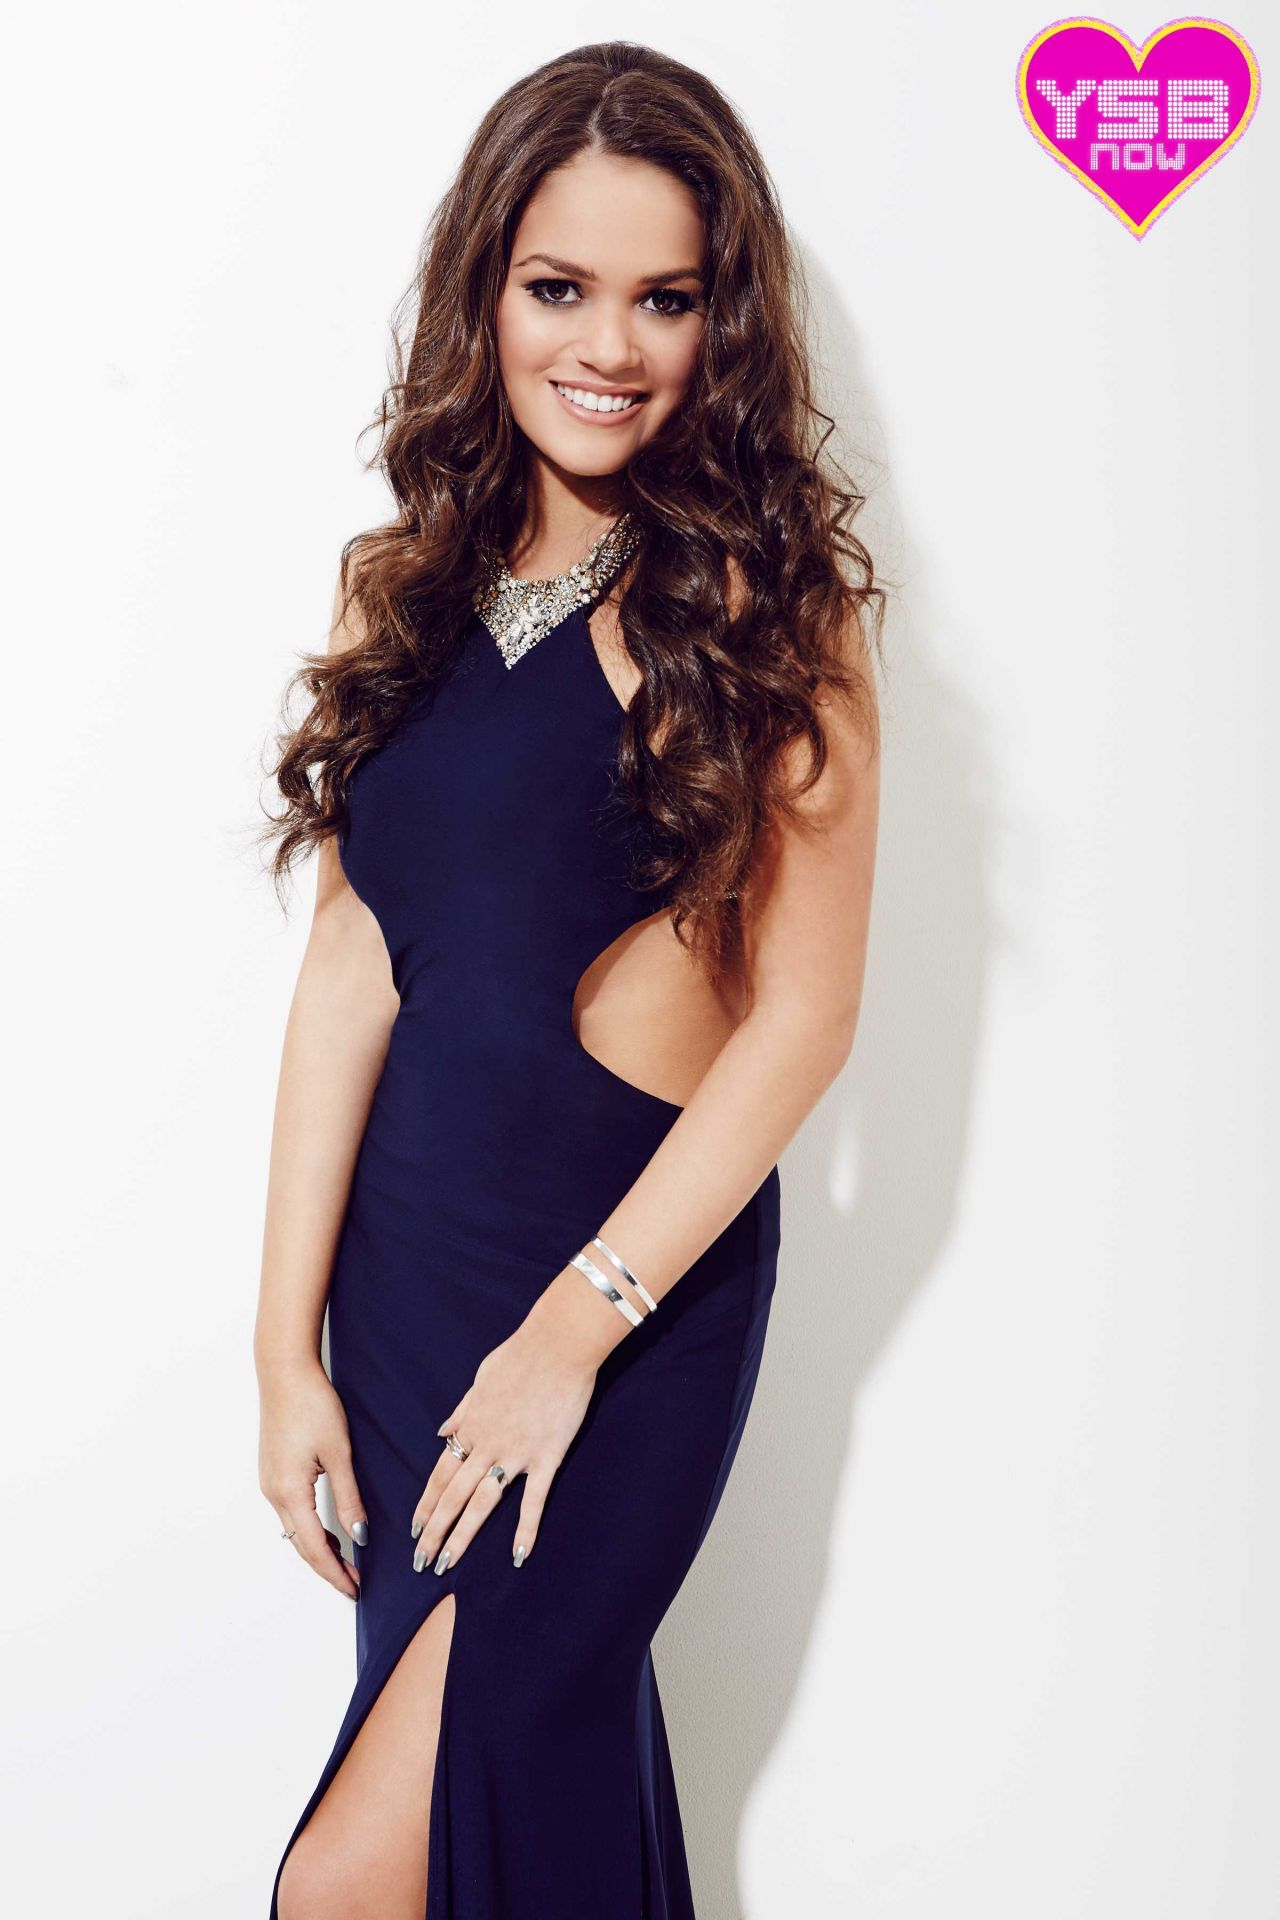 Madison pettis dress